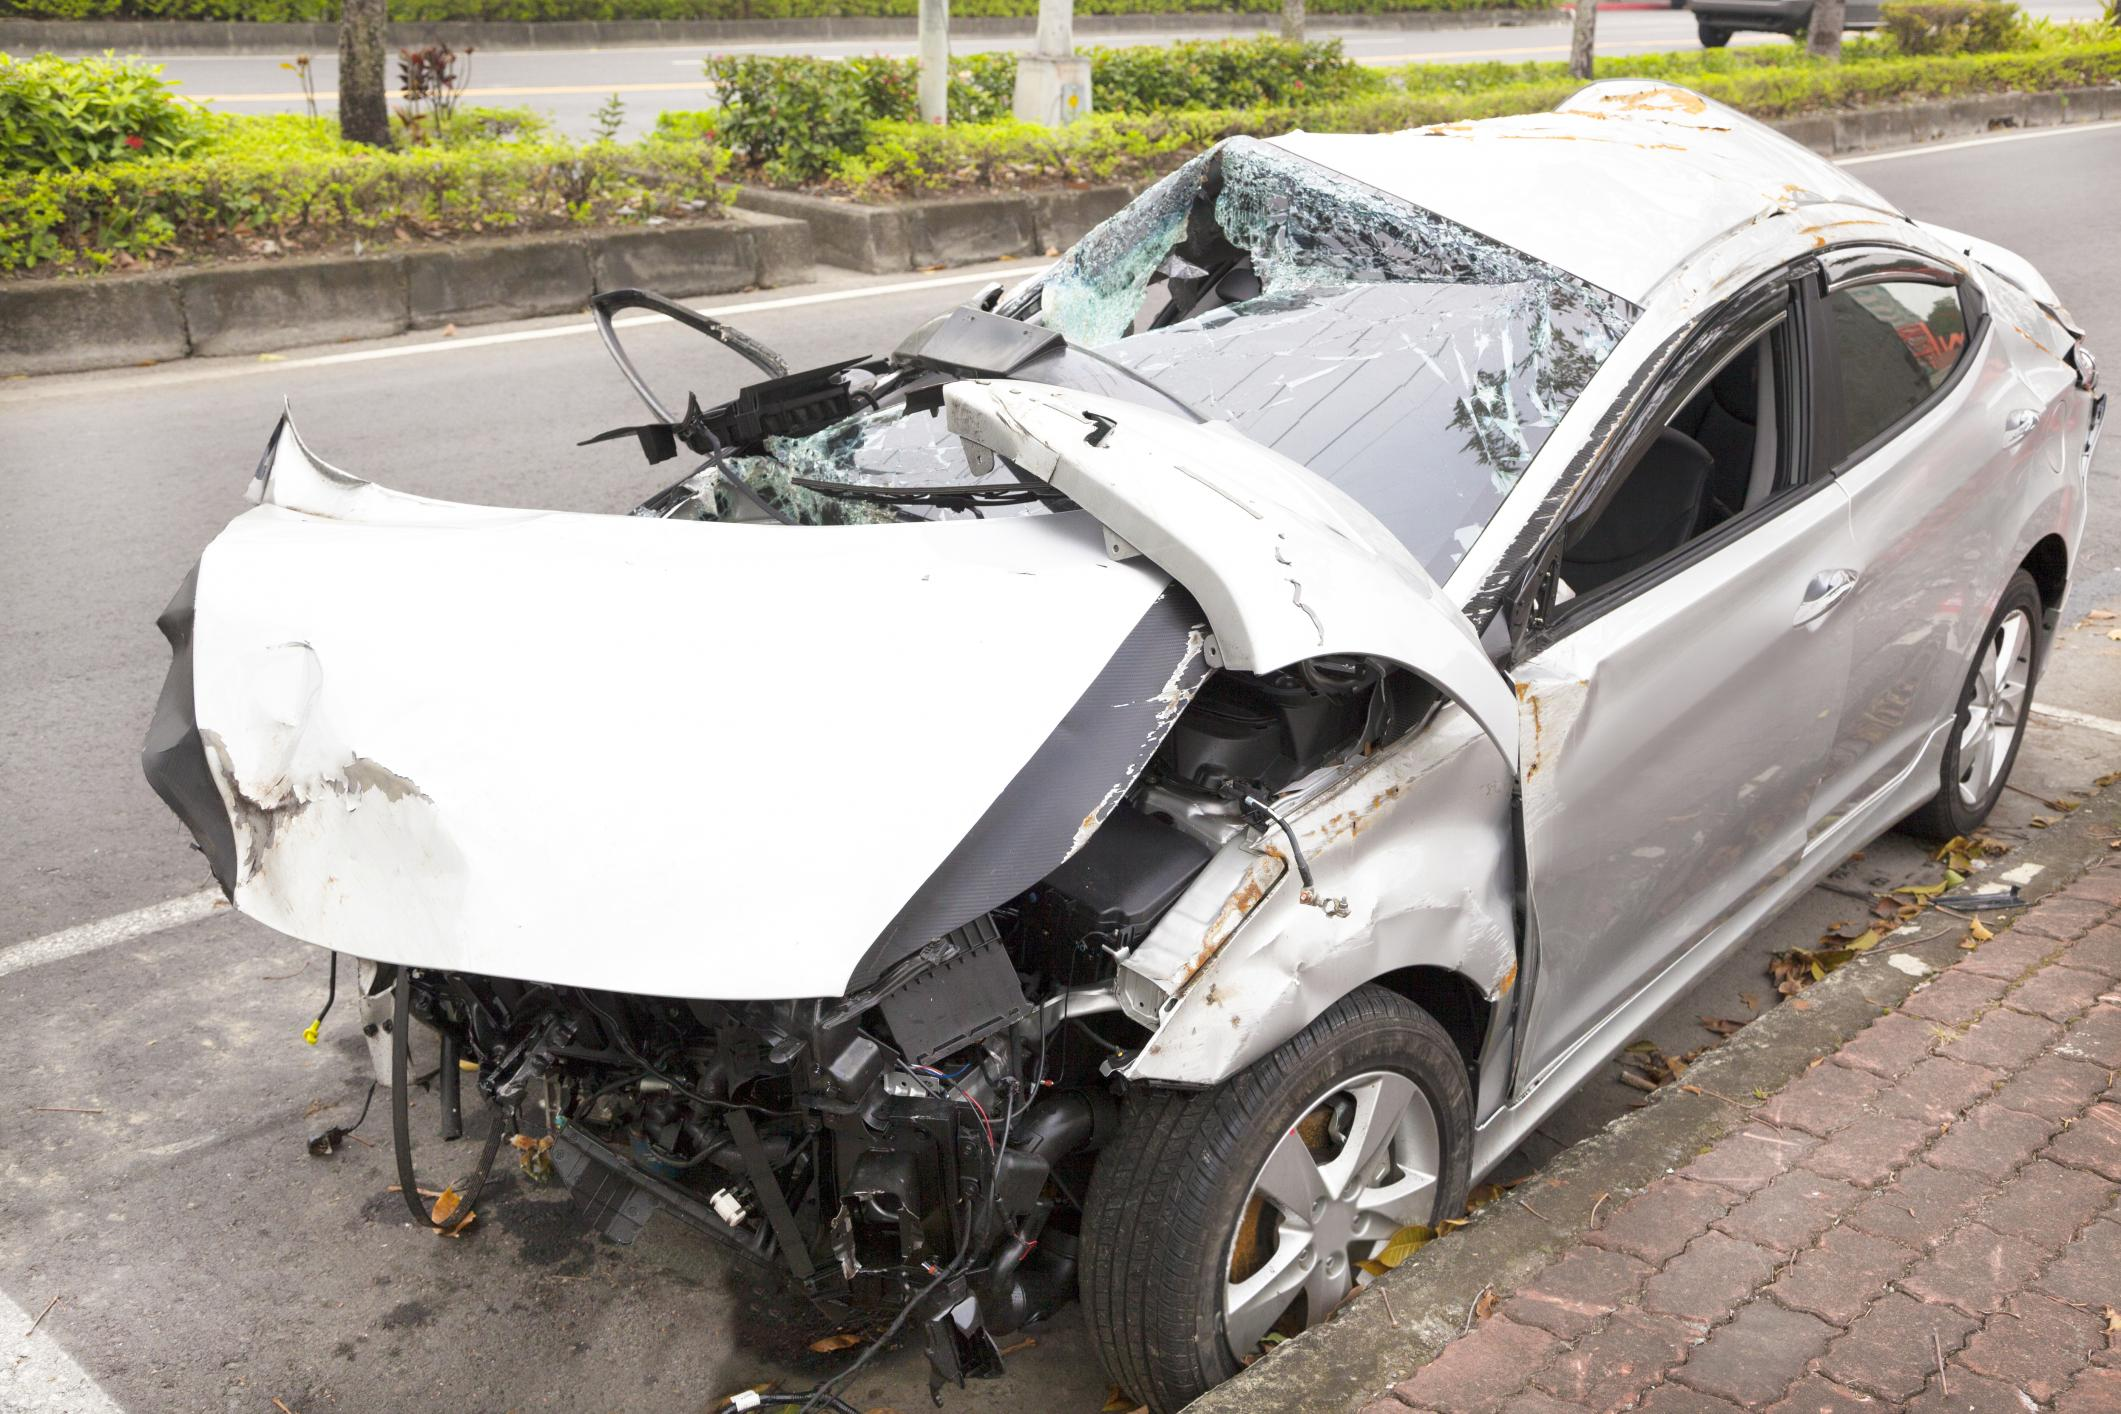 car-accident-and-wrecked-car-on-the-road